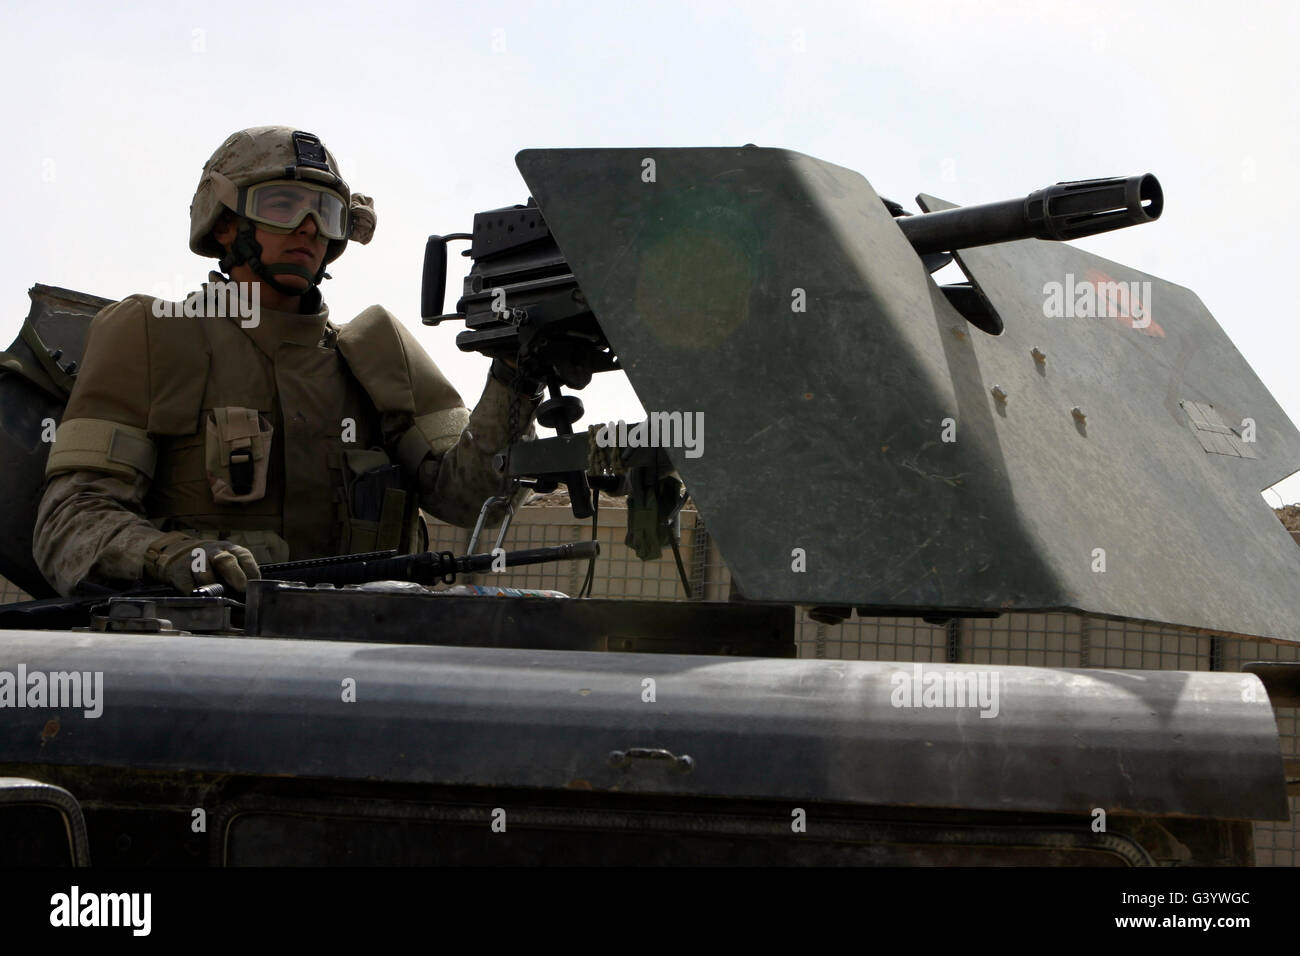 A MK-19 automatic grenade launcher gunner. - Stock Image